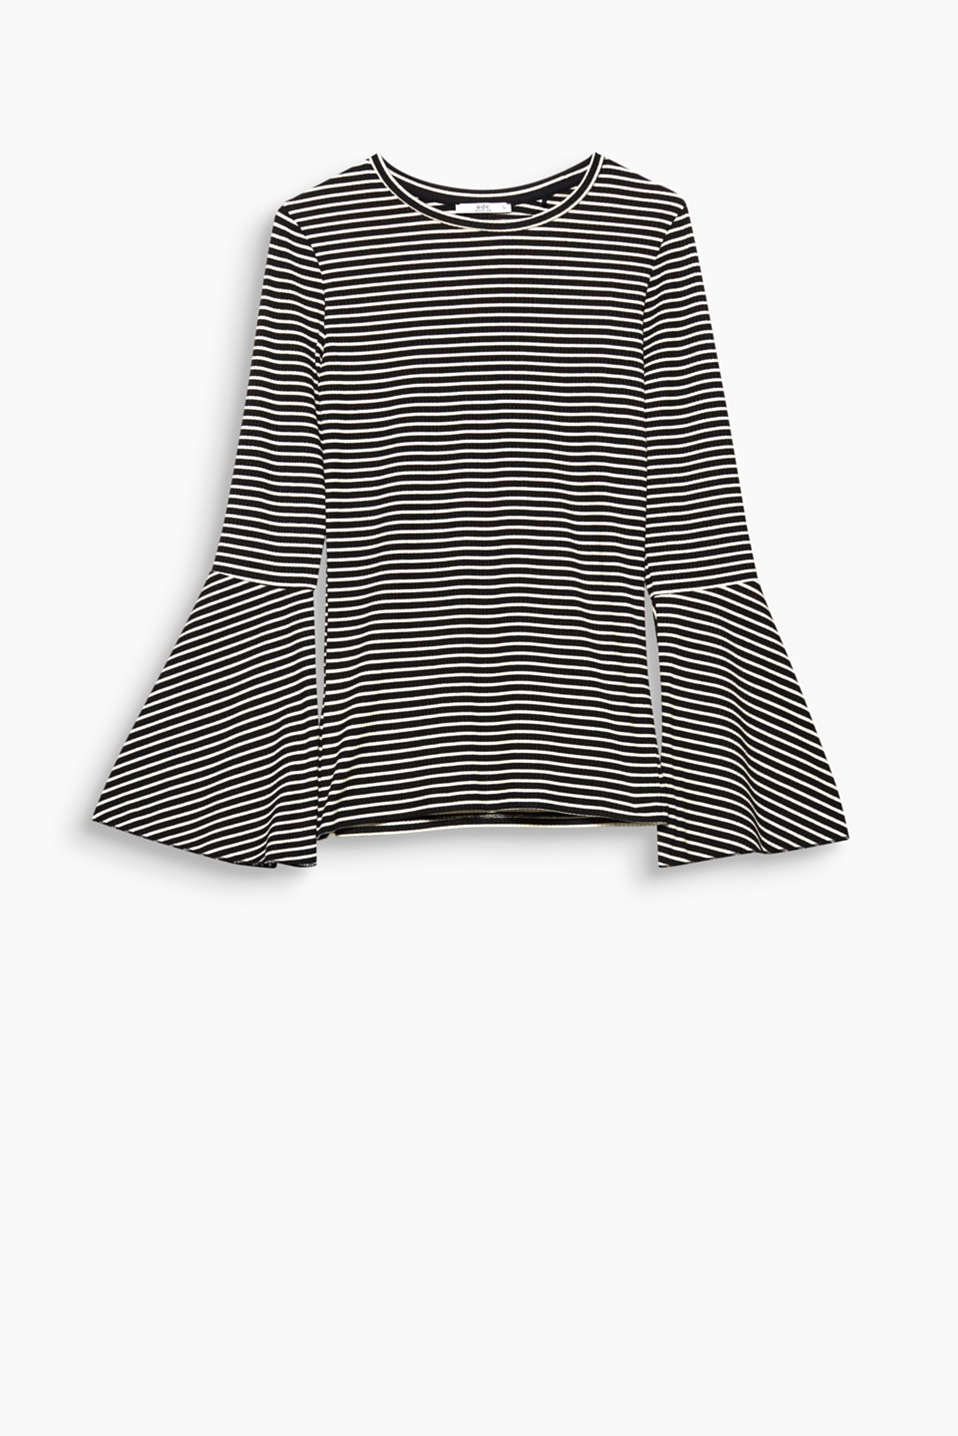 The combination of fine stripes and trumpet sleeves gives this top an extremely trendy look.